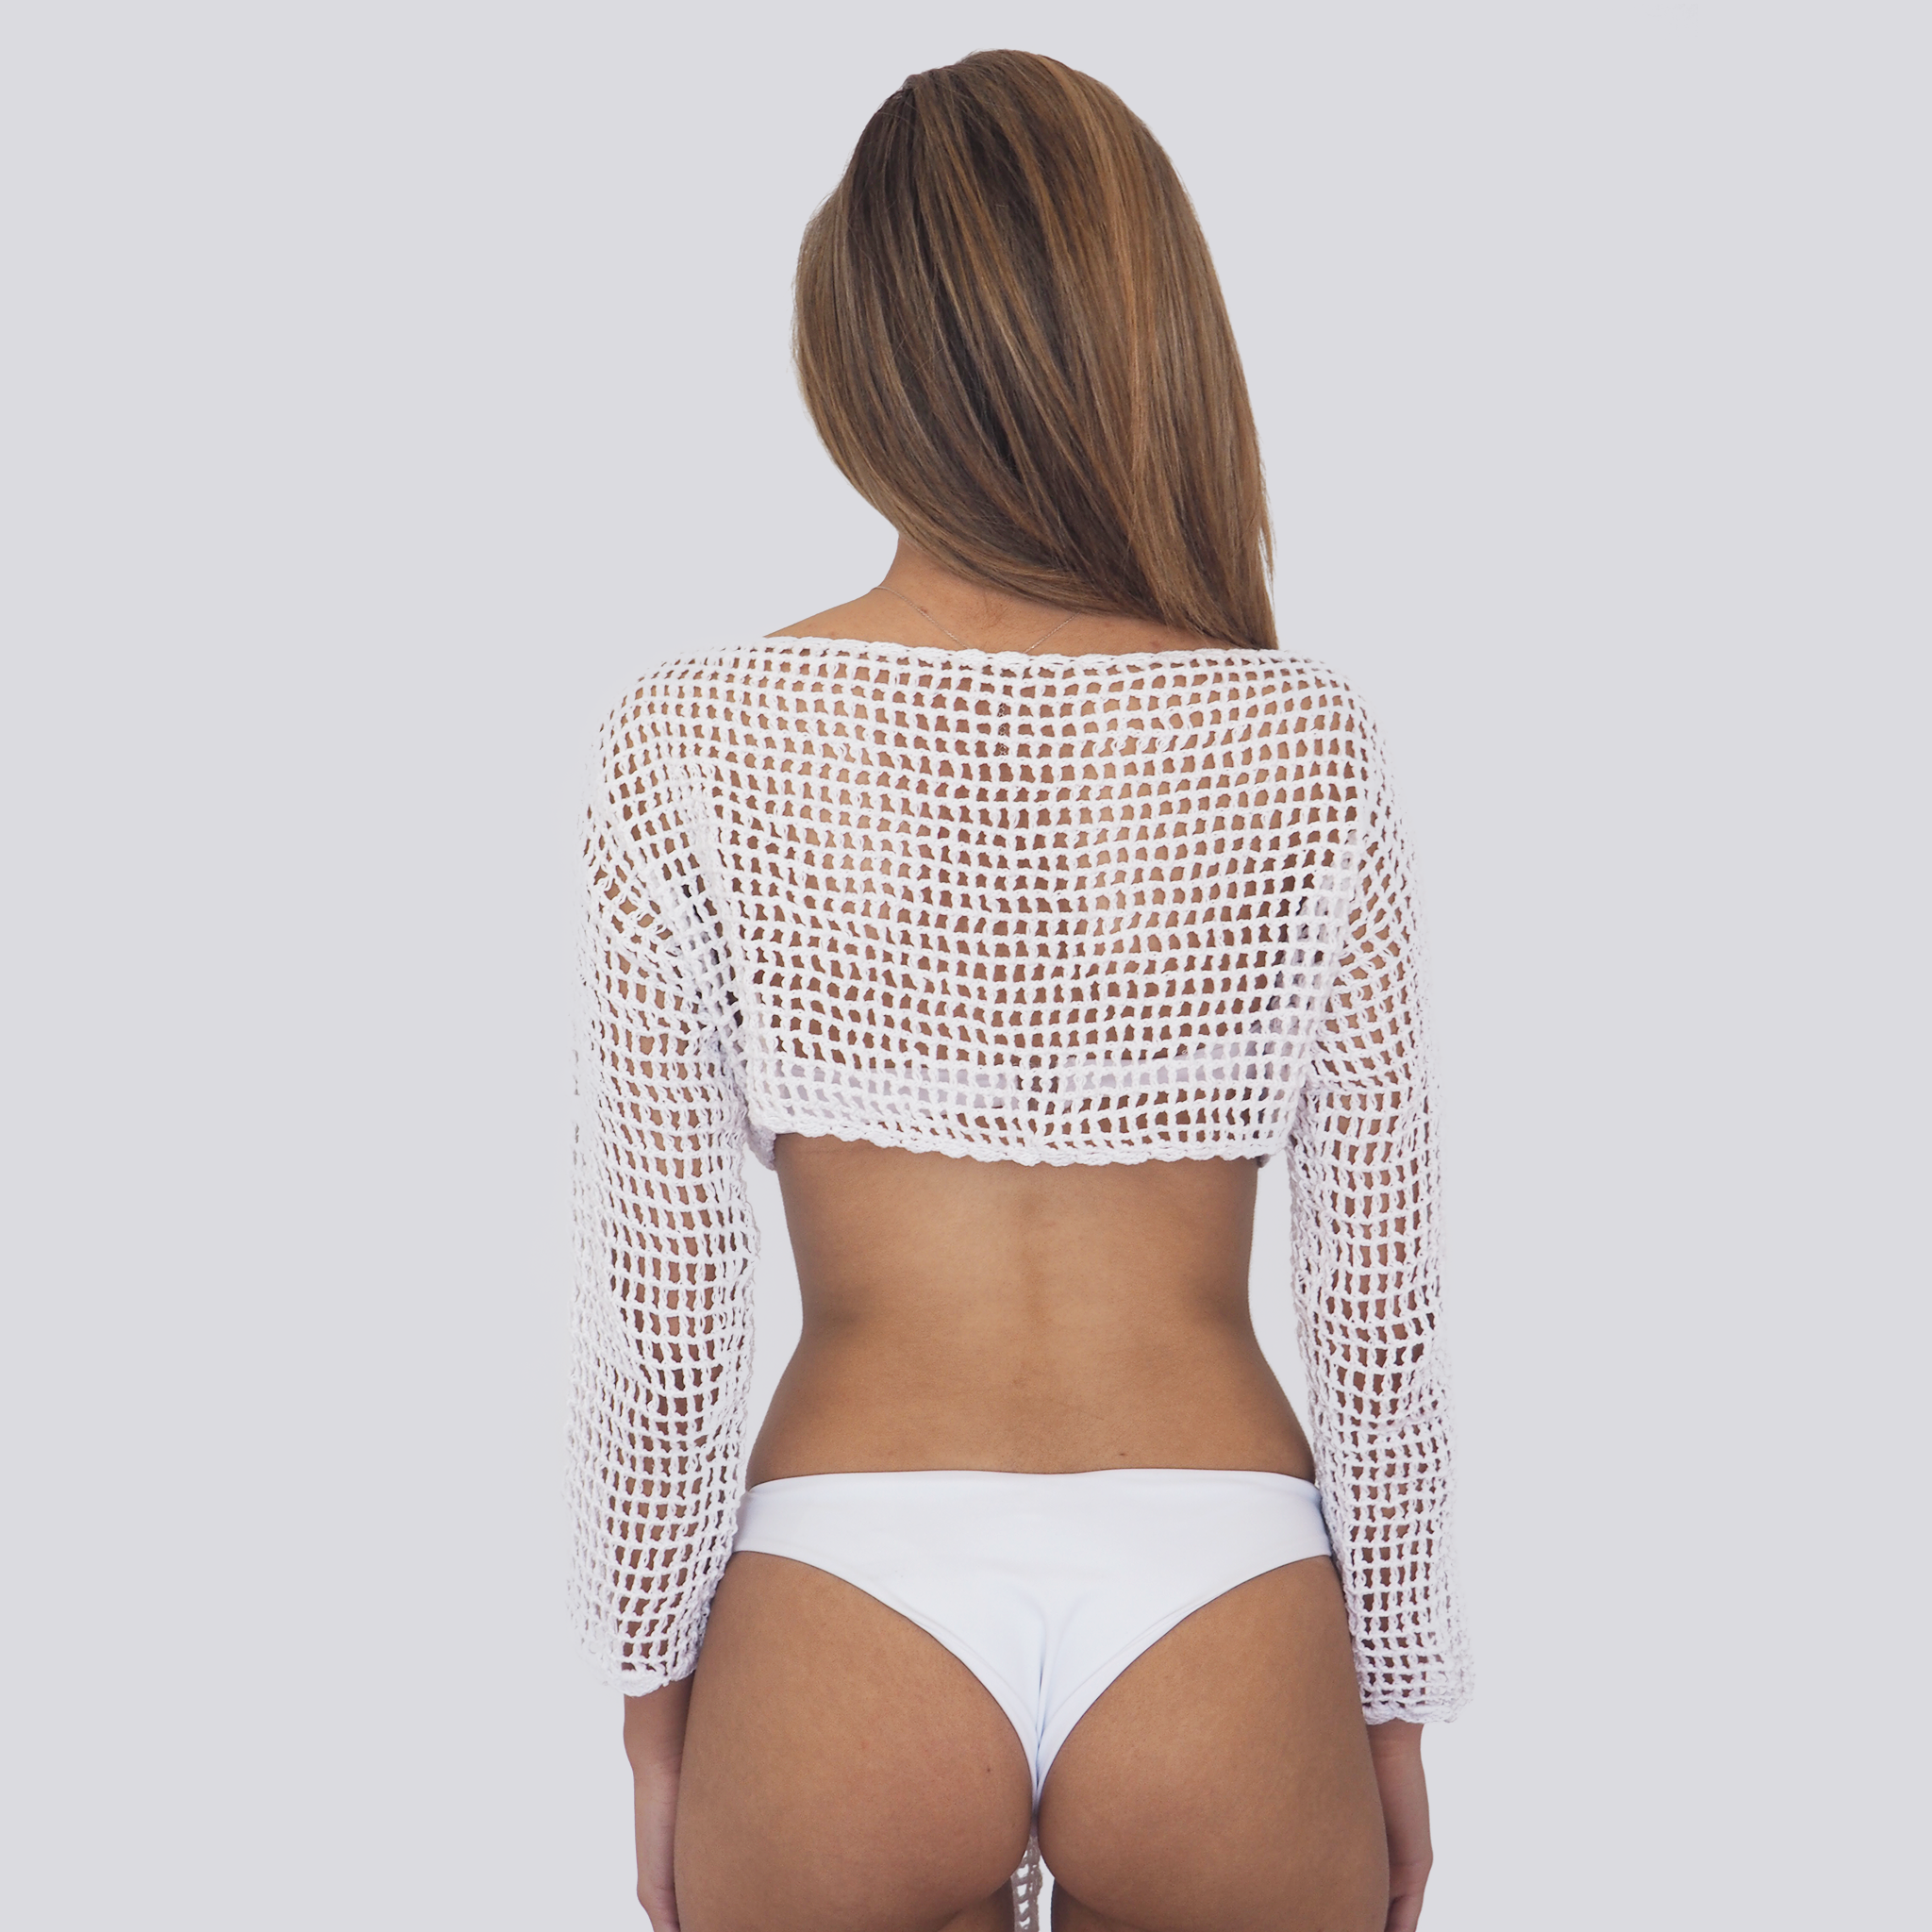 ELLIE TOP // CROCHET